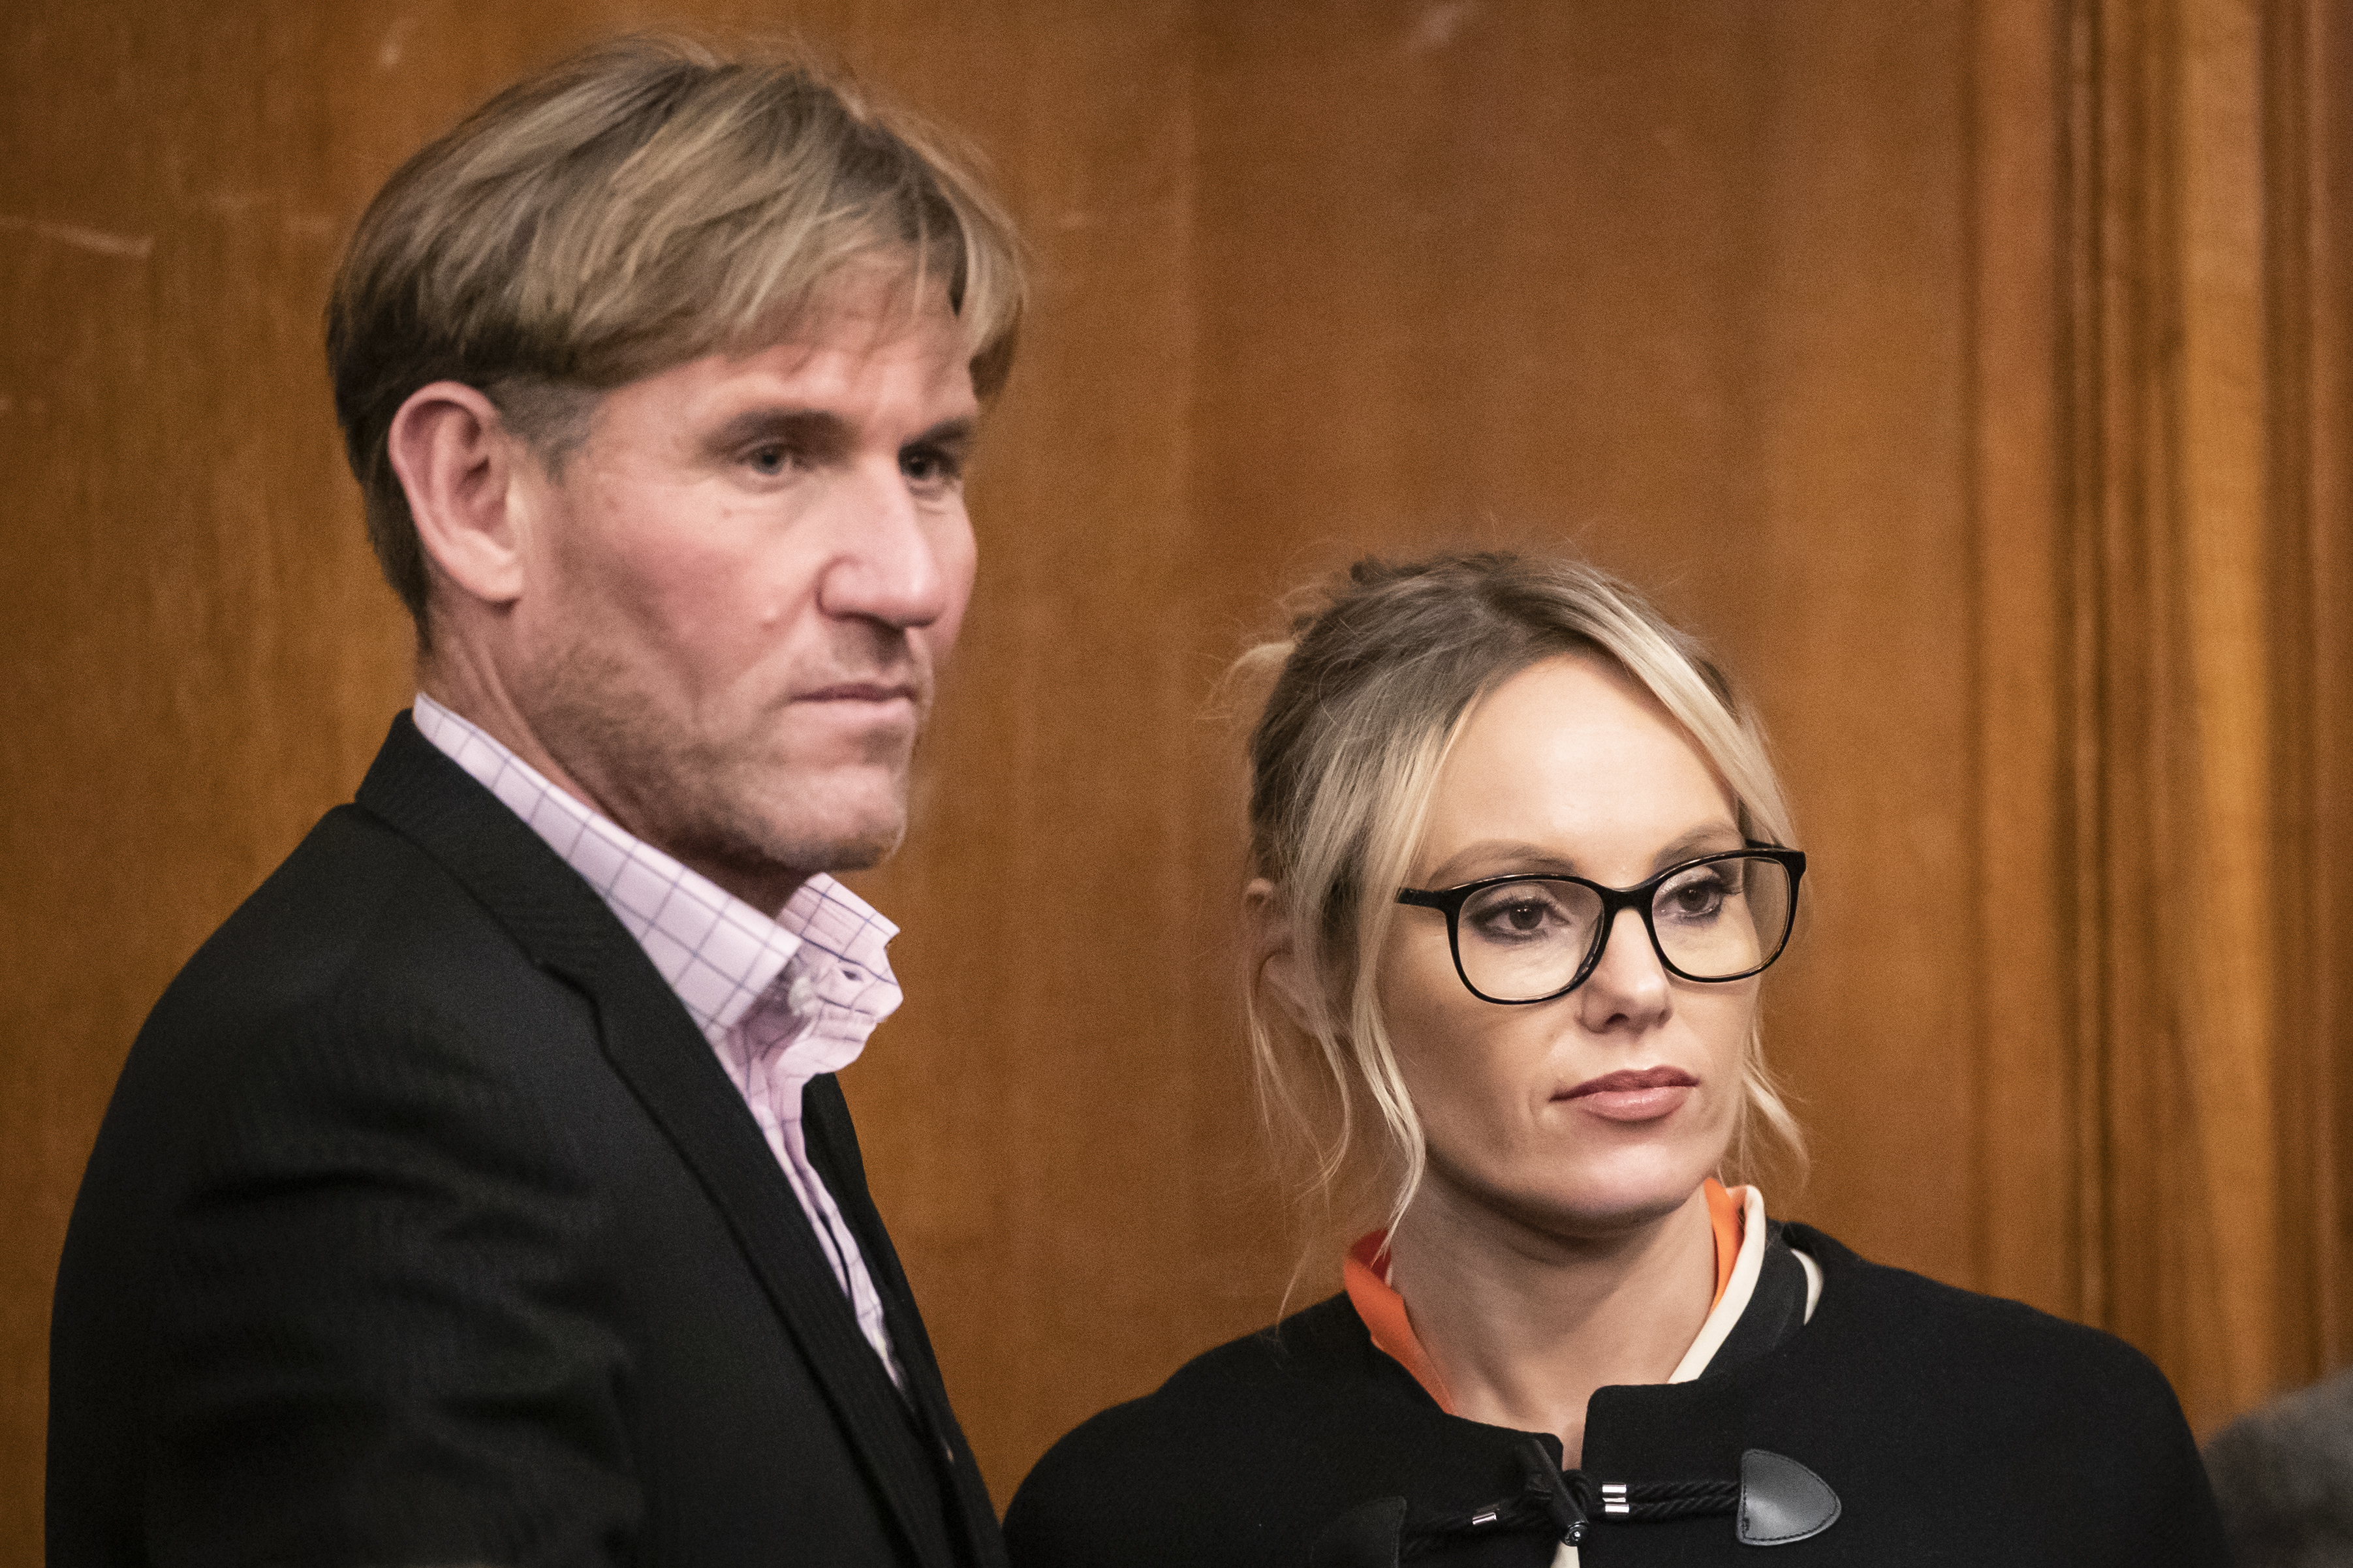 Michelle Dewberry, the former winner of The Apprentice and Brexit Party candidate for Hull West & Hessle, with former Crystal Palace owner Simon Jordan after she failed to win the Kingston upon Hull West & Hessle seat at the Guildhall in Hull in the 2019 General Election.